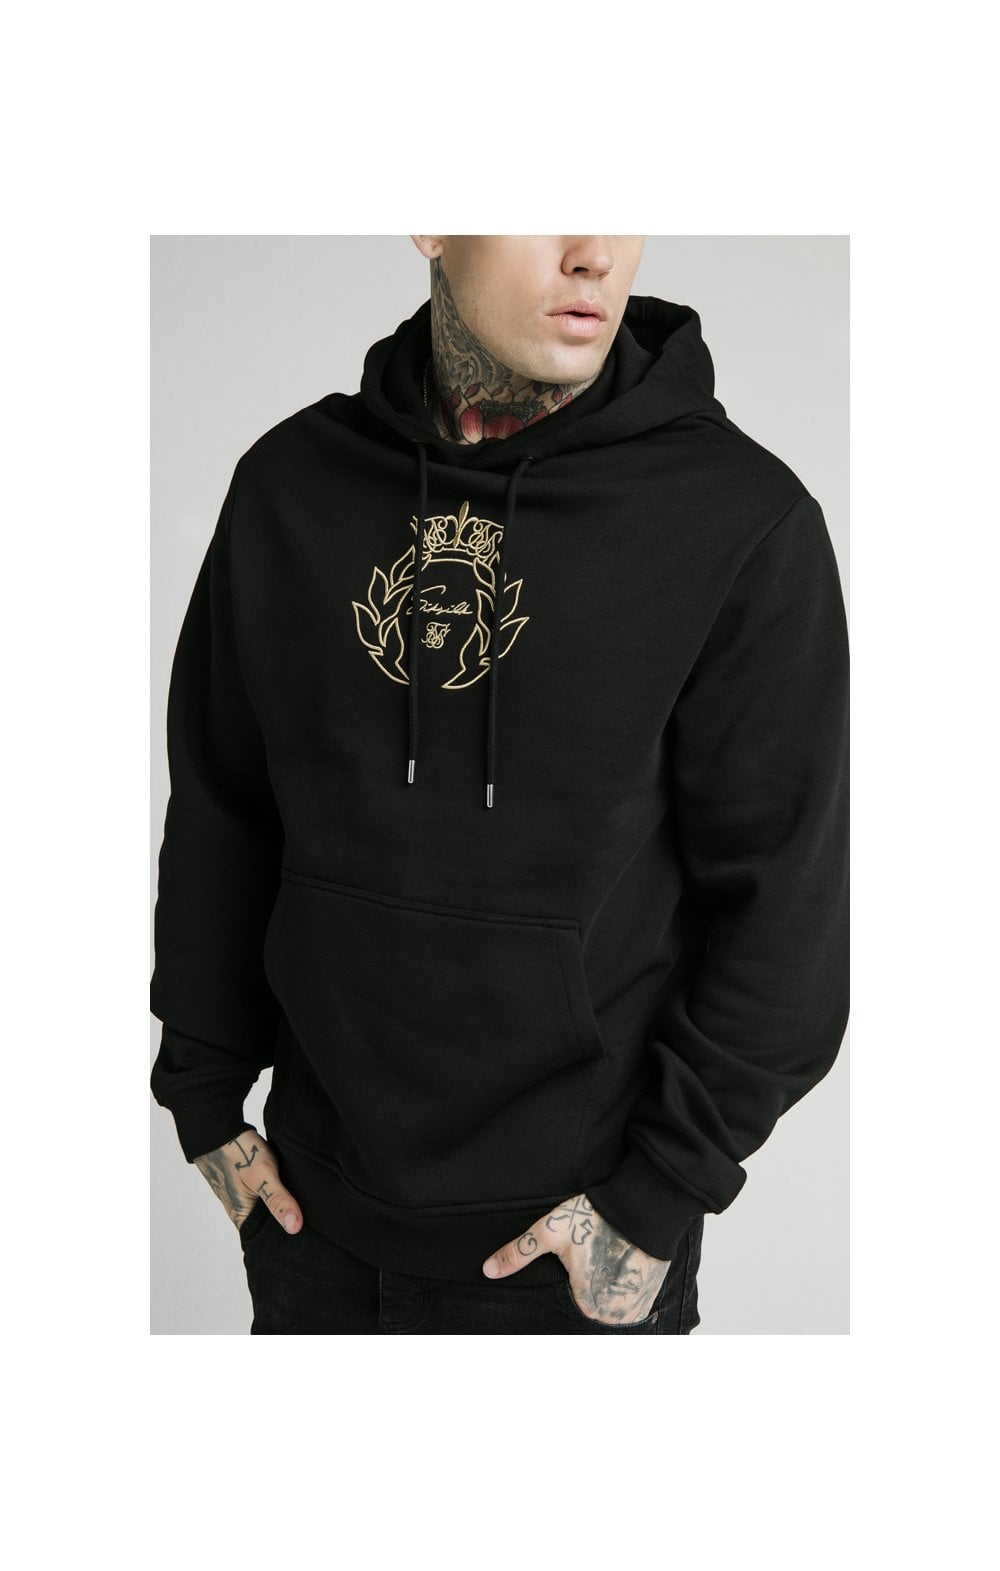 SikSilk Overhead Tape Hoodie - Black & Gold